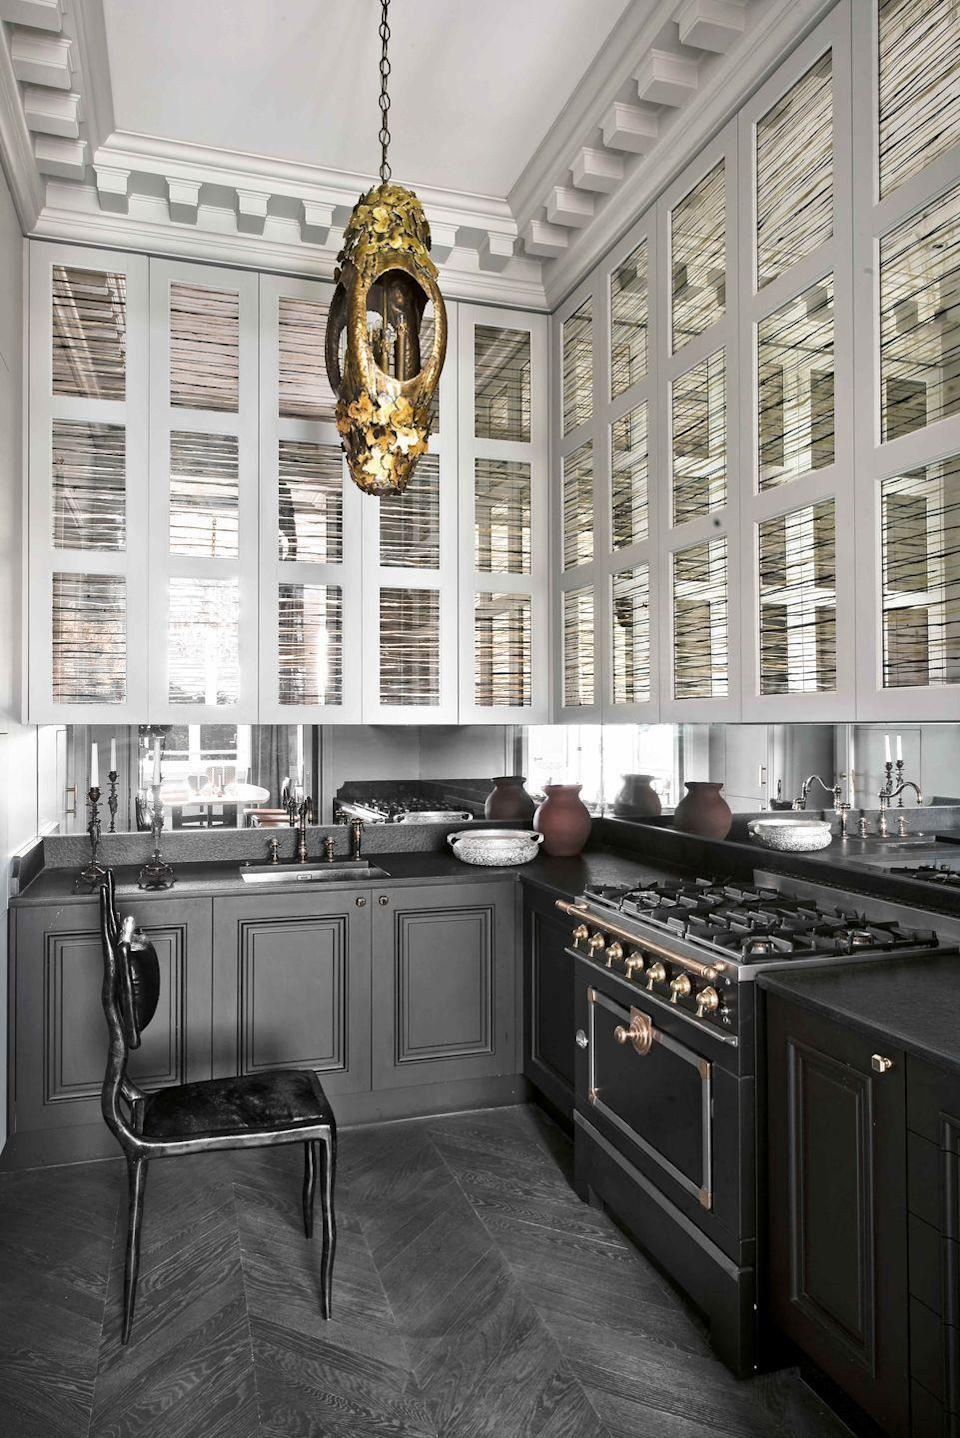 "<p>Soft, smoky tones lend high-fashion, sophisticated touch to the alluring kitchen of this <a href=""https://www.veranda.com/home-decorators/a30145127/jean-louis-deniot-paris-flat/"" rel=""nofollow noopener"" target=""_blank"" data-ylk=""slk:18th-century flat in Paris"" class=""link rapid-noclick-resp"">18th-century flat in Paris</a>. The upper cabinets feature mirrored eglomise facings and ""almost look like venetian blinds,"" notes decorator <a href=""http://www.deniot.com/"" rel=""nofollow noopener"" target=""_blank"" data-ylk=""slk:Jean-Louis Deniot"" class=""link rapid-noclick-resp"">Jean-Louis Deniot</a>. The lower cabinetry paint color is Midnight Oil by Benjamin Moore.</p><p><a class=""link rapid-noclick-resp"" href=""https://www.benjaminmoore.com/en-us/color-overview/find-your-color/color/1631/midnight-oil?color=1631"" rel=""nofollow noopener"" target=""_blank"" data-ylk=""slk:Get the Look"">Get the Look</a></p>"